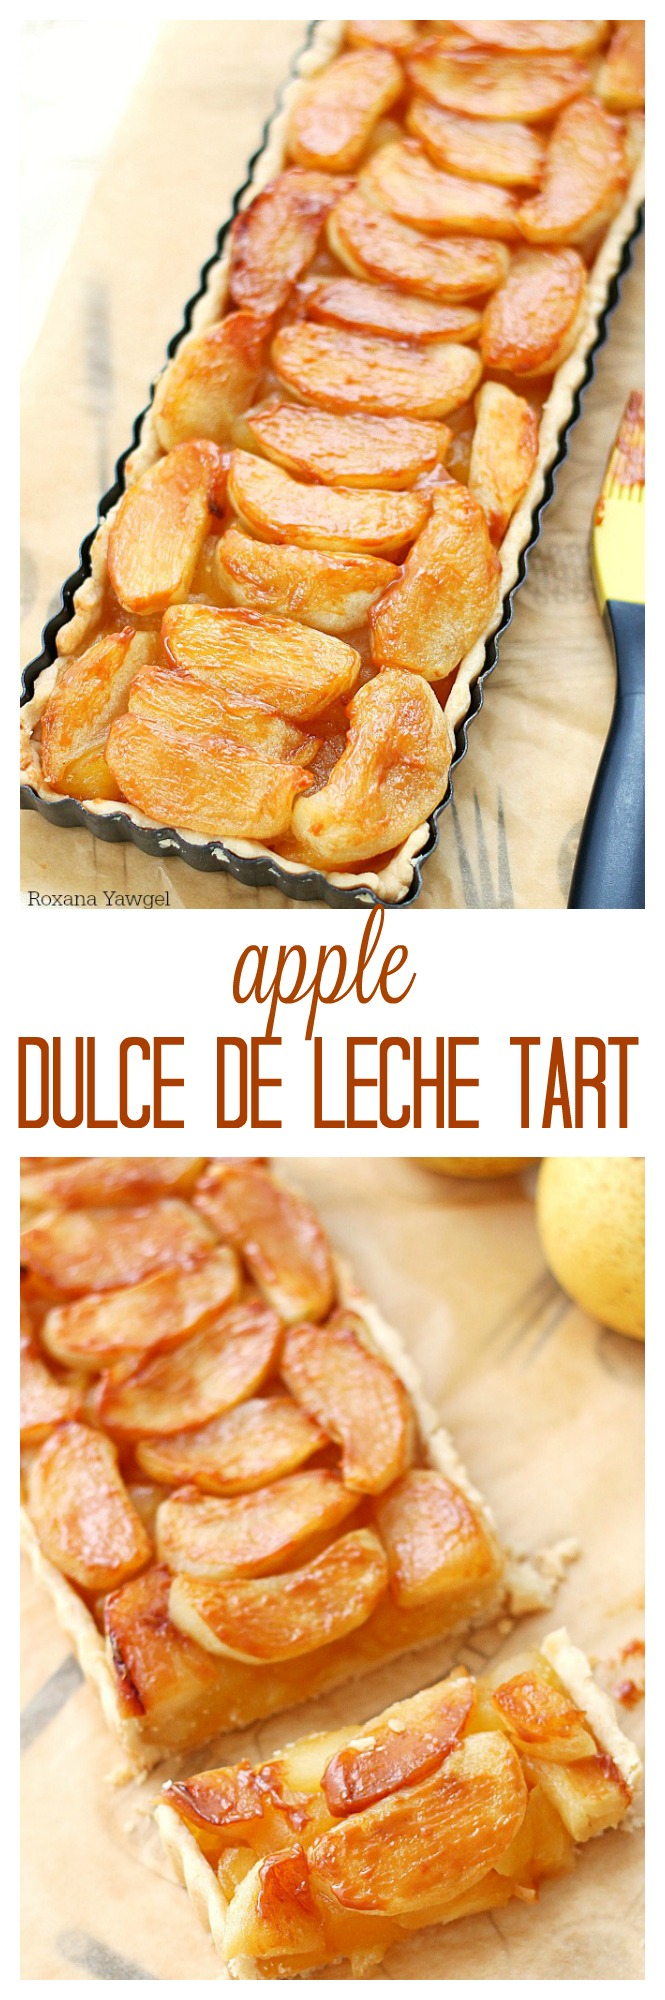 apple dulce de leche tart recipe